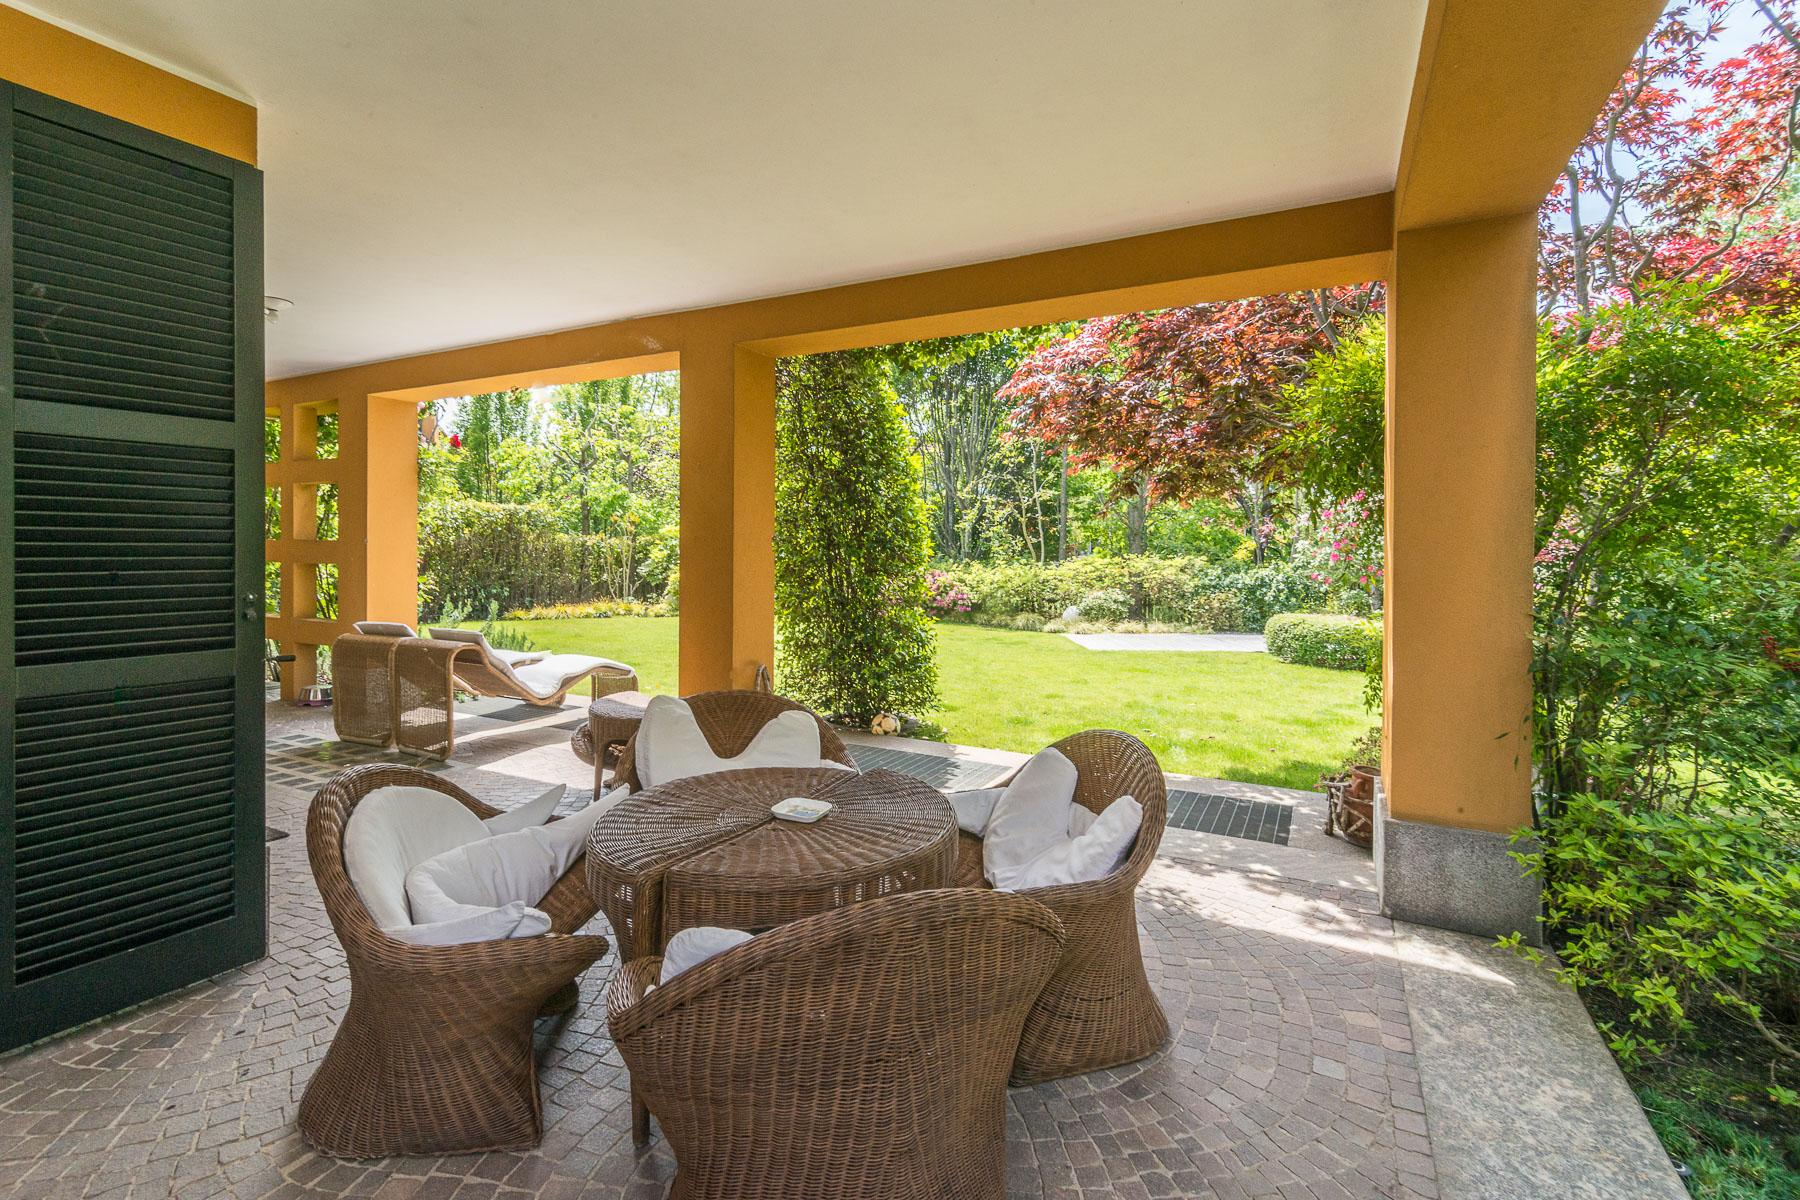 Castelconturbia Golf Club, exquisite 300 sqm villa with 1500 sqm garden and jacuzzi - 10